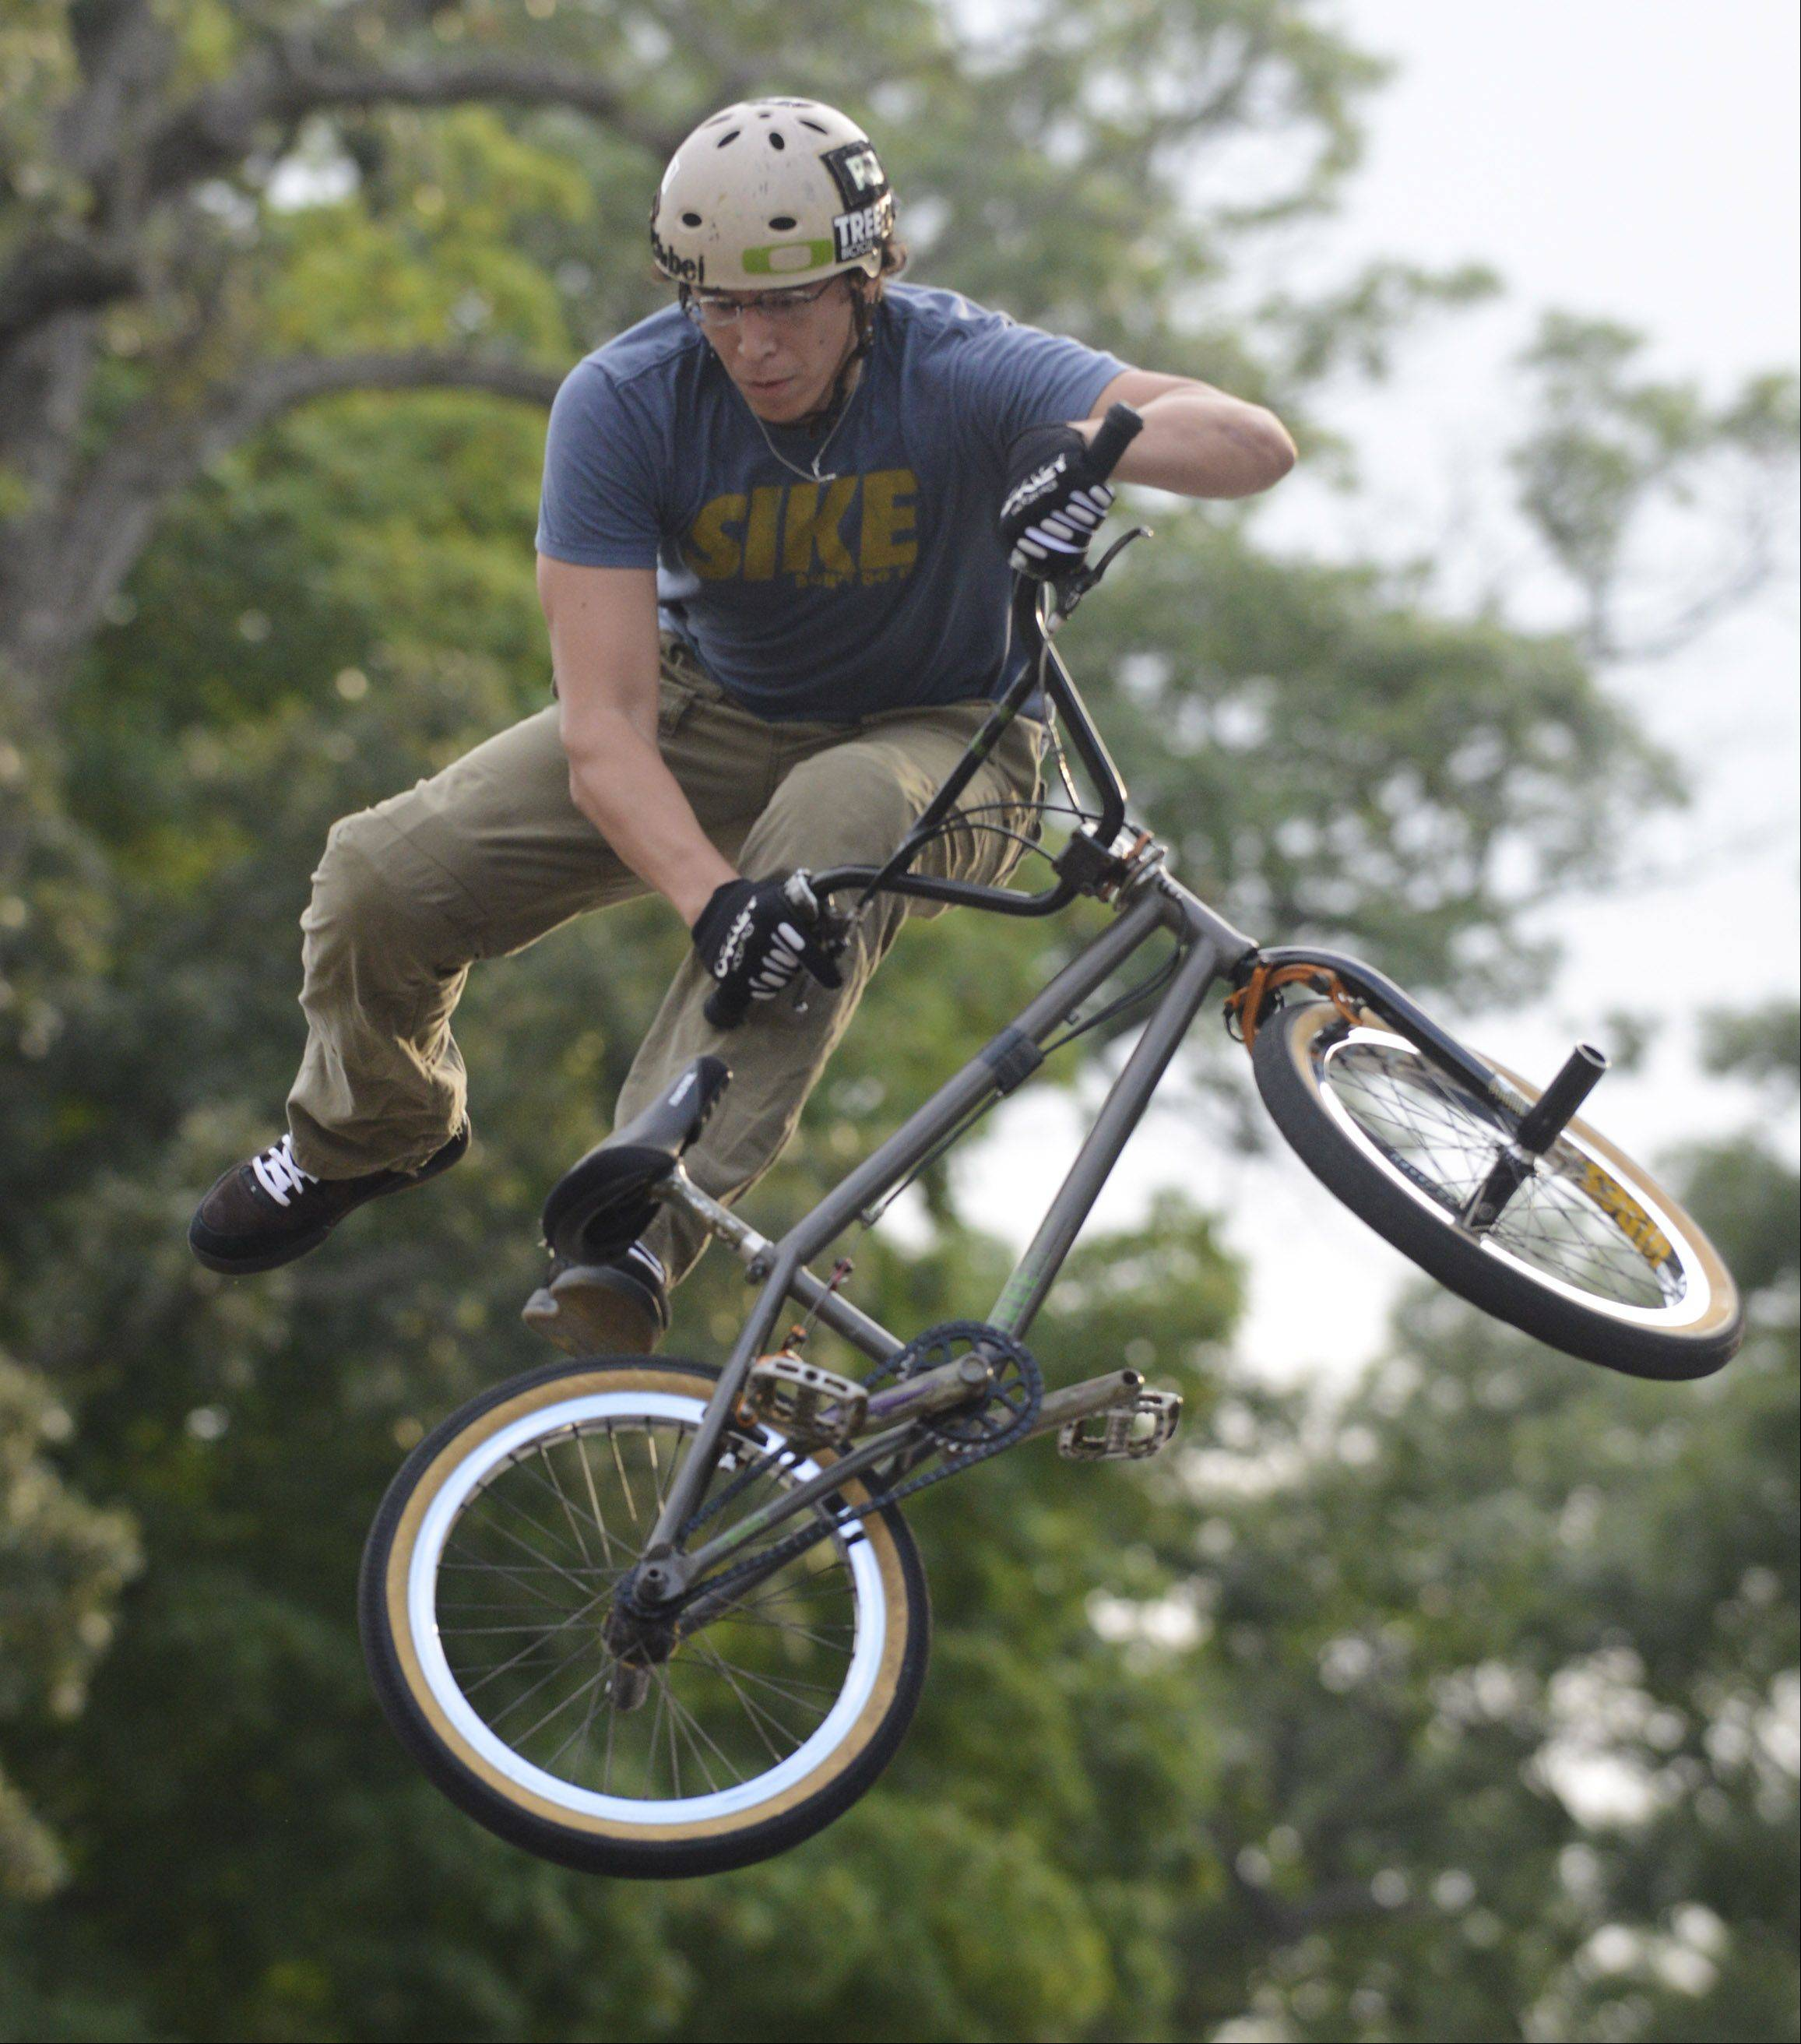 Koji Kraft of Addison performs a stunt during the Division BMX Stunt Show during the Bartlett National Night Out at Bartlett Park Tuesday.